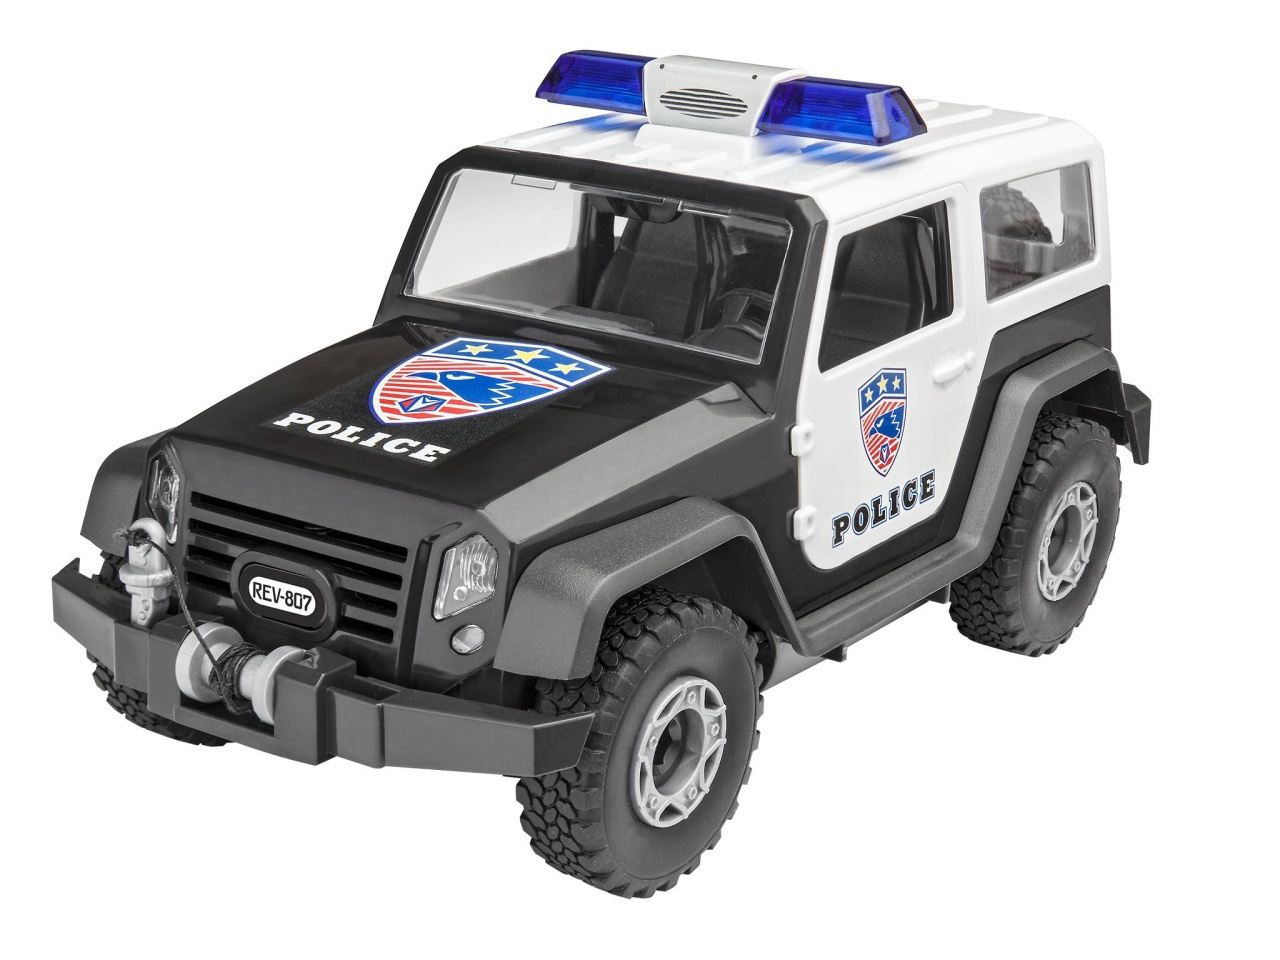 Junior Kit Offroad Vehicle Police 1:20